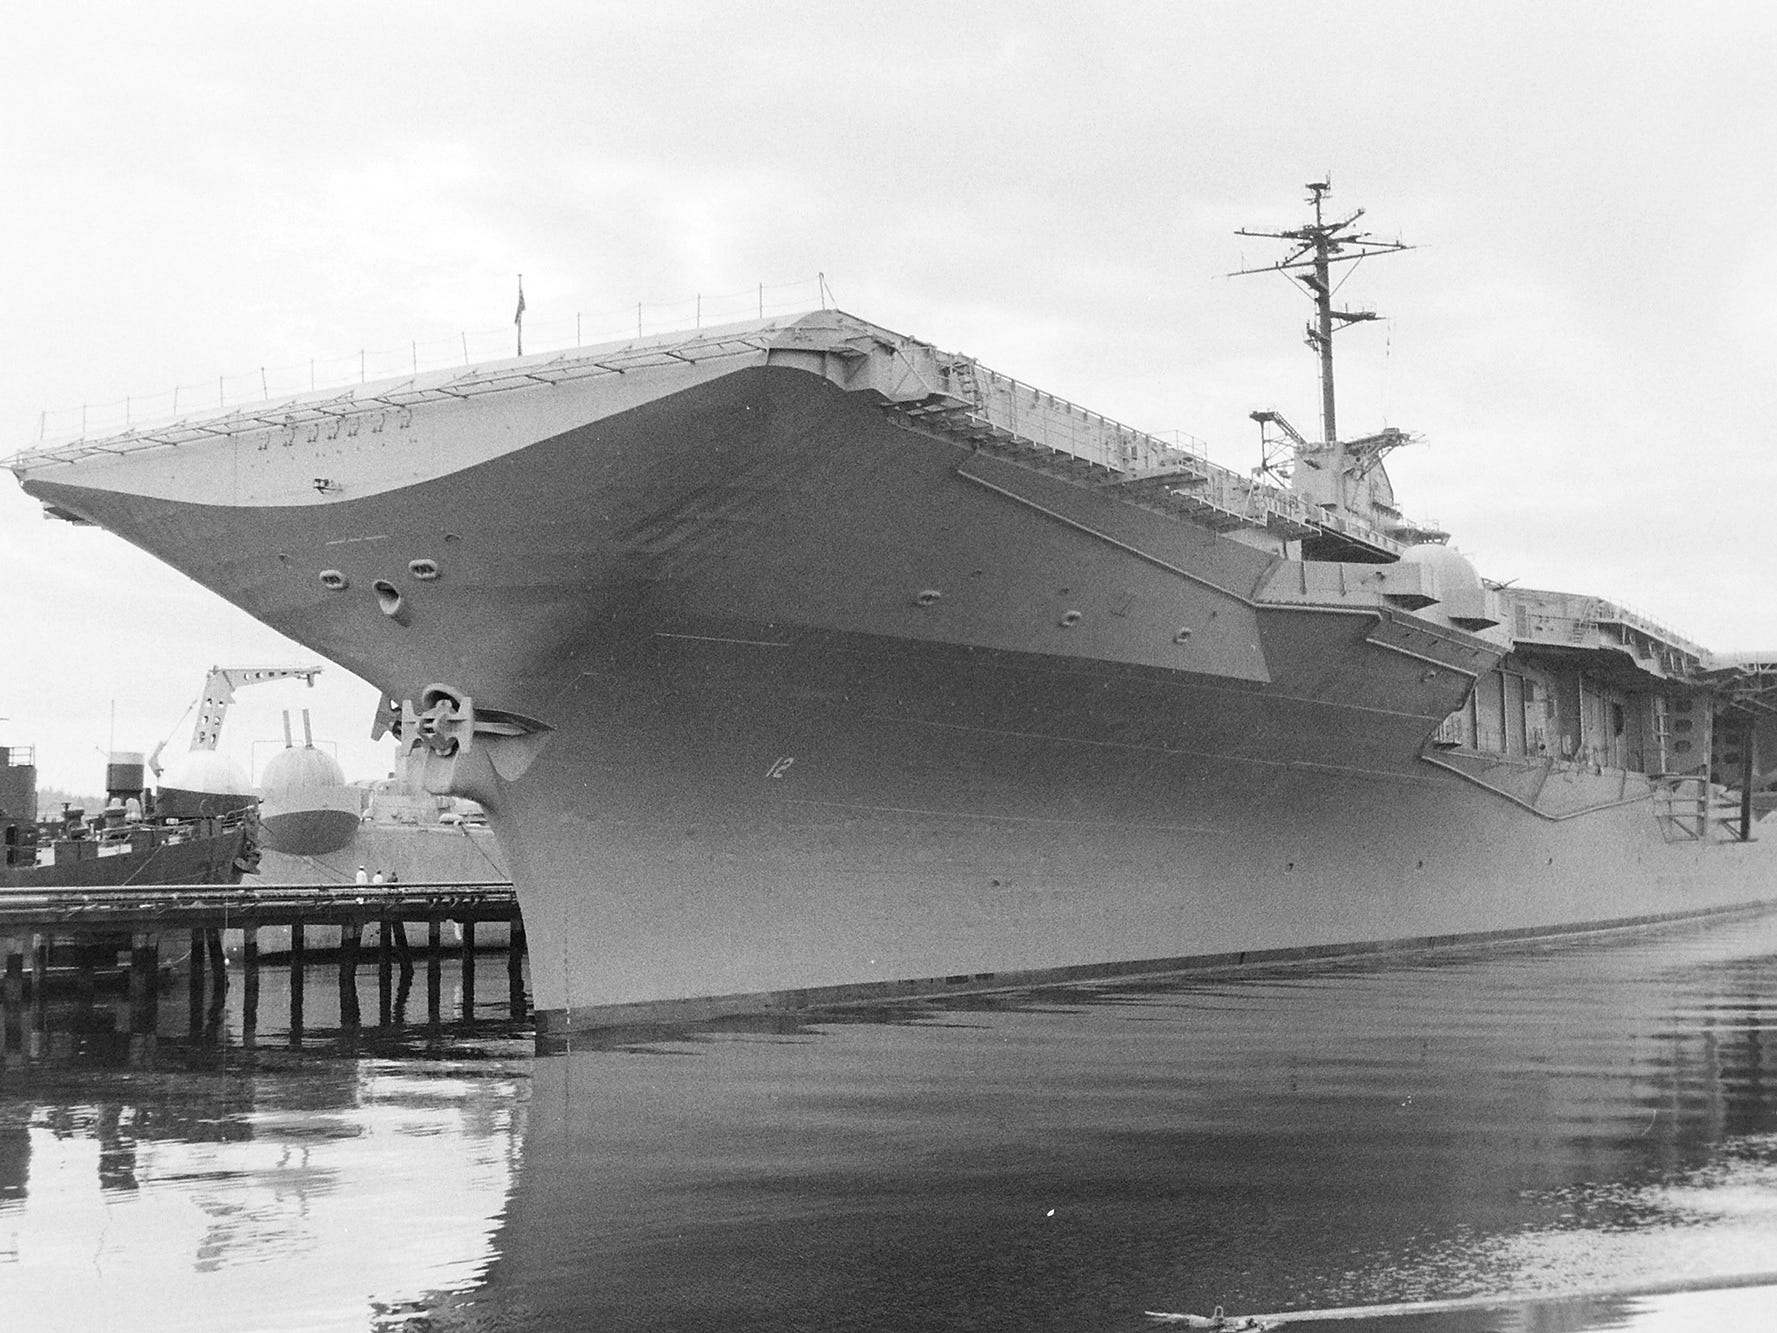 06/27/70